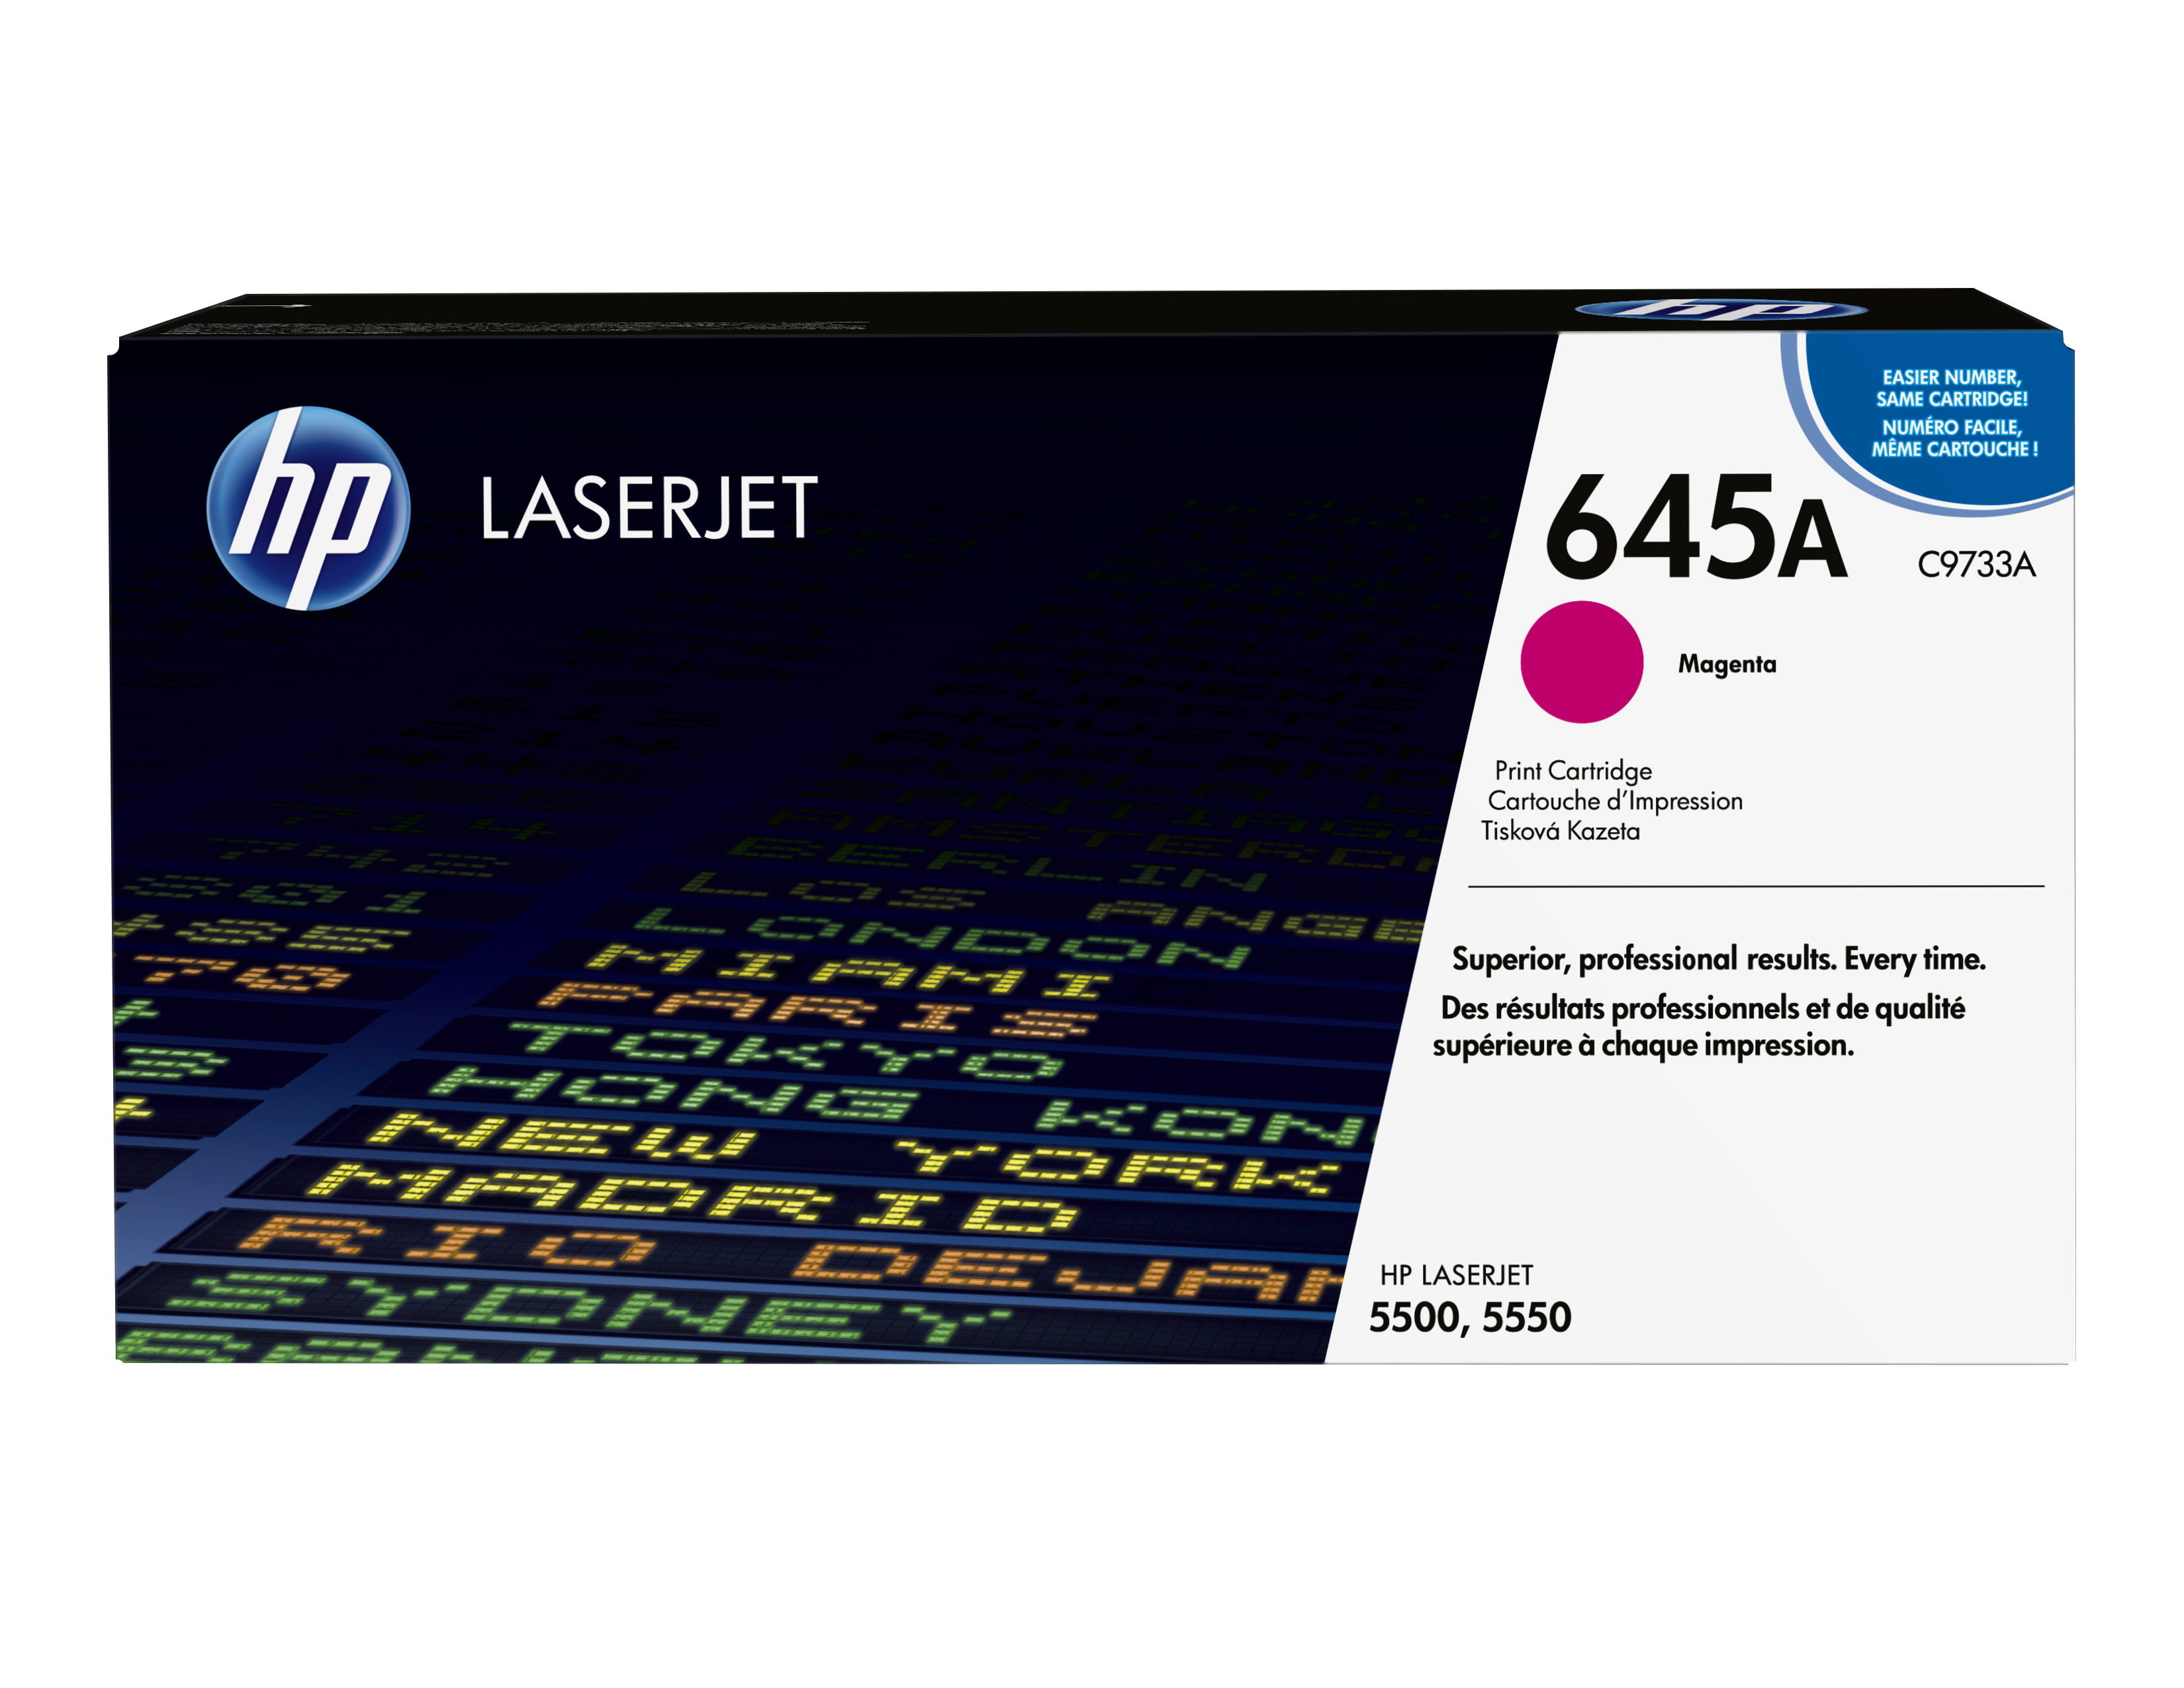 Remanufactured HP C9733A Toner Cartridge Magenta 12K C9733A - rem01